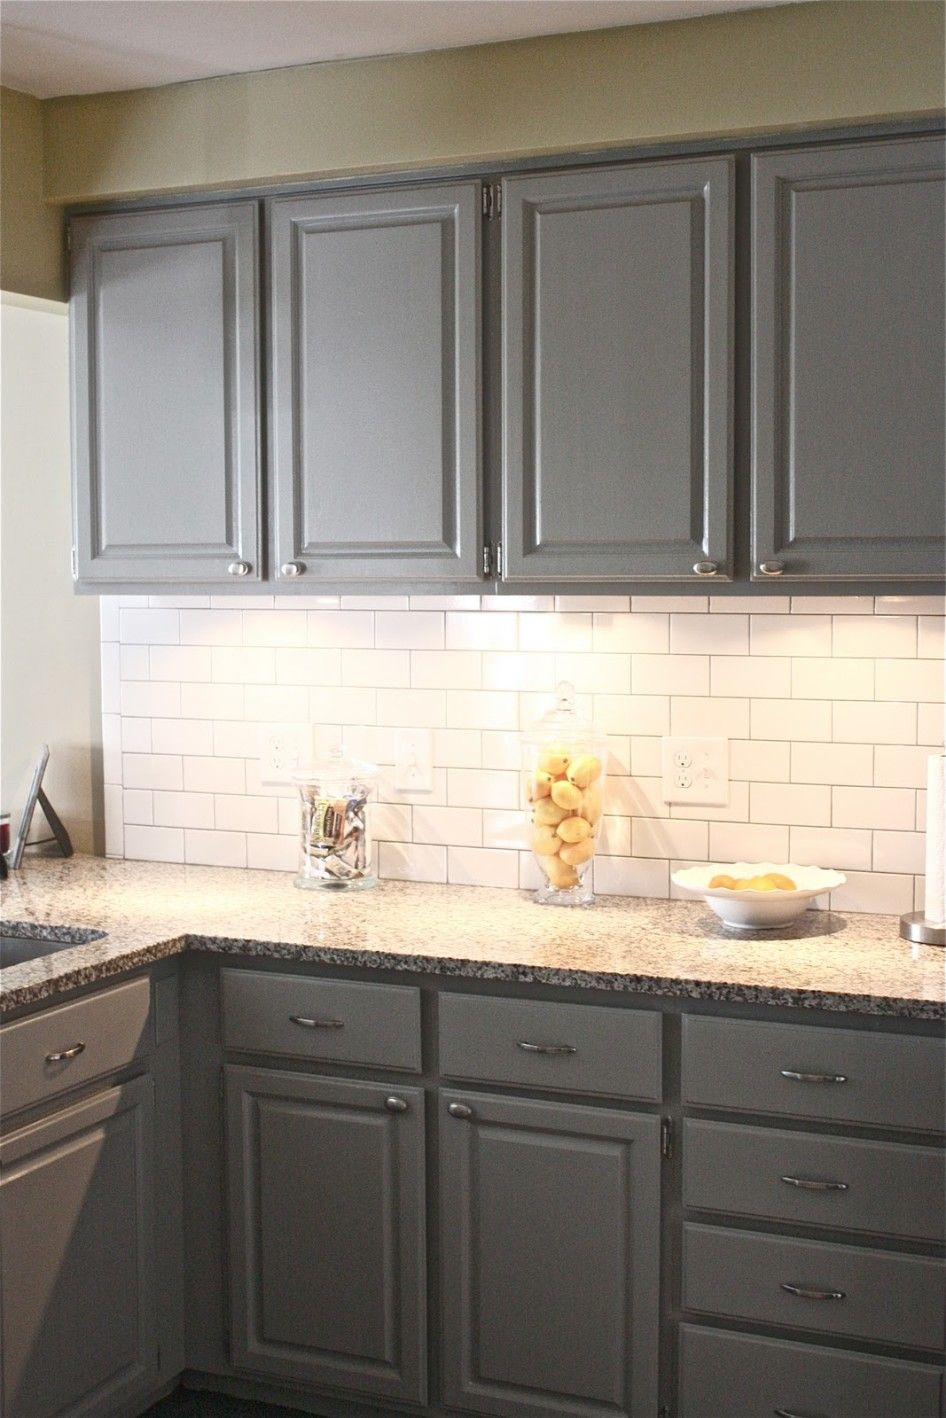 Light Gray Kitchen With Dark Cabinets gray cabinets with white subway tile backsplash |  gray kitchen